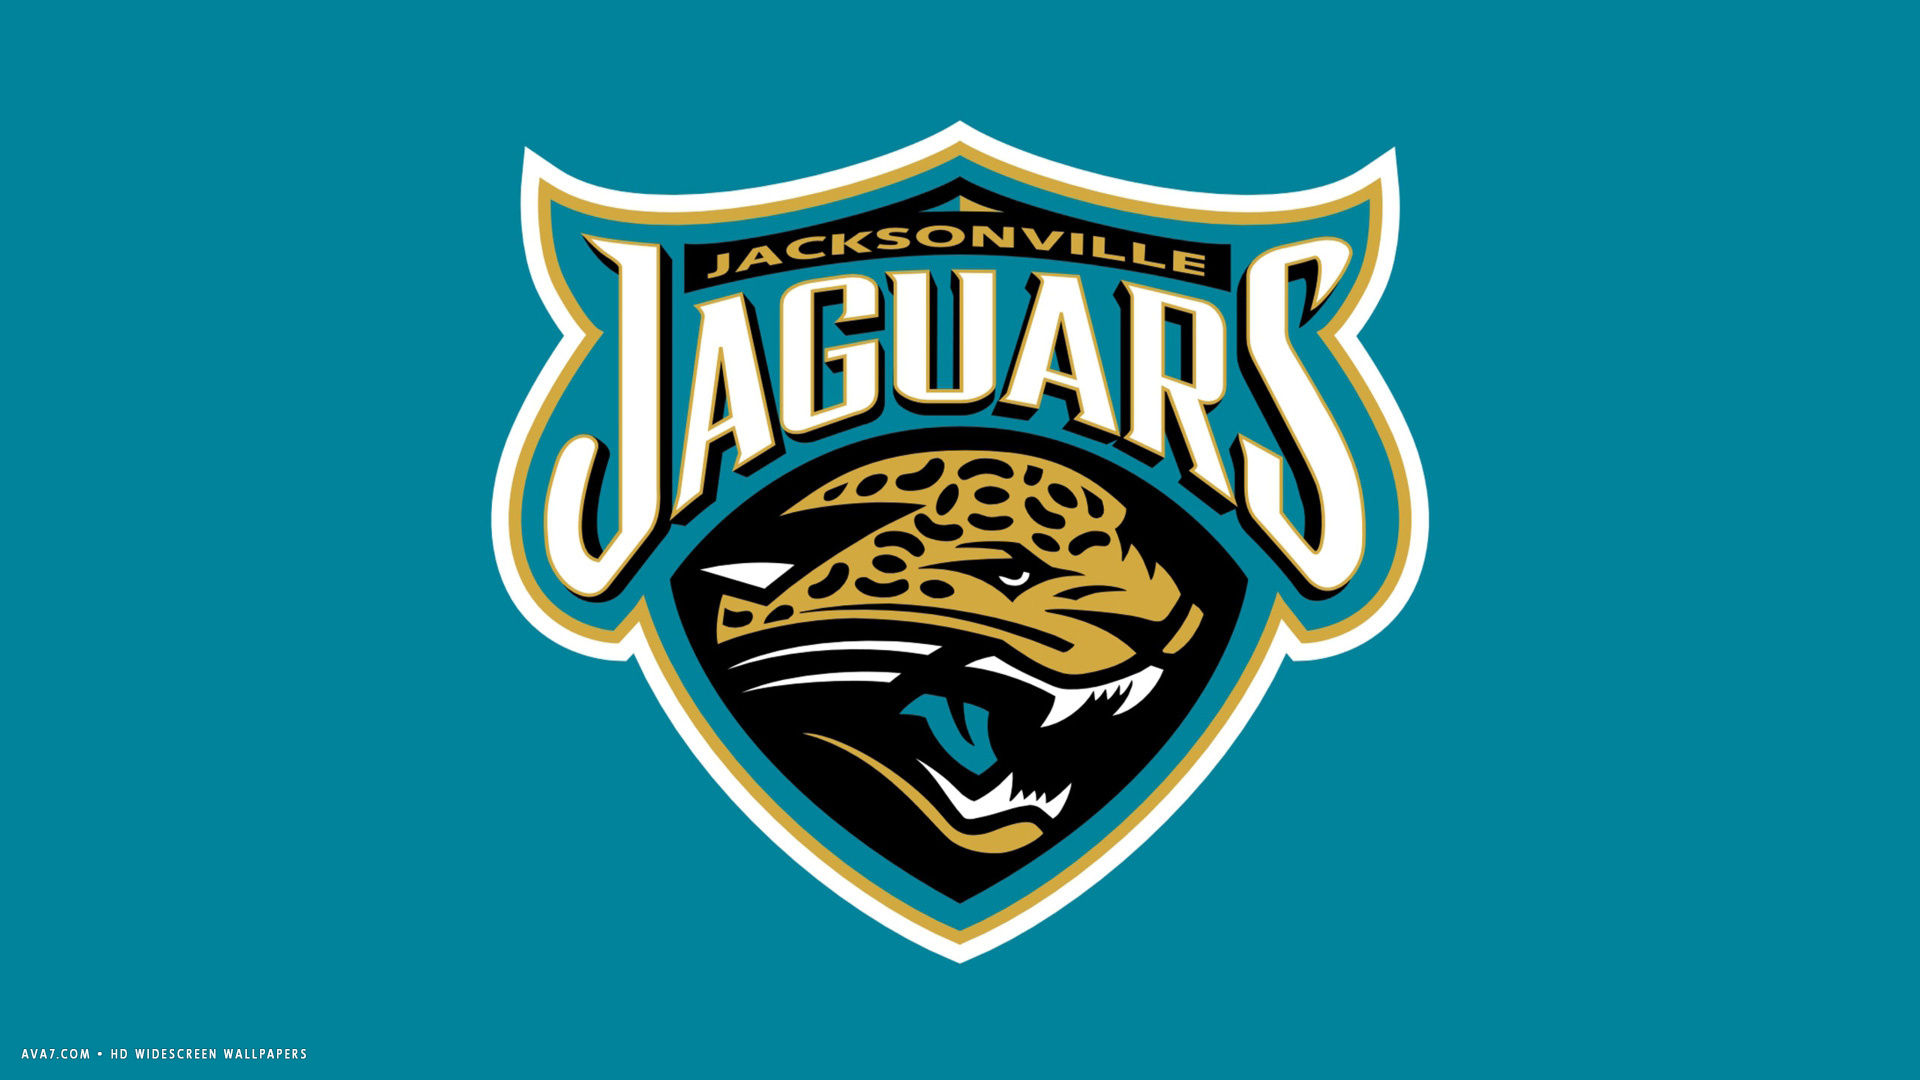 pics photos jacksonville jaguars wallpaper football wallpapers nfl. Cars Review. Best American Auto & Cars Review